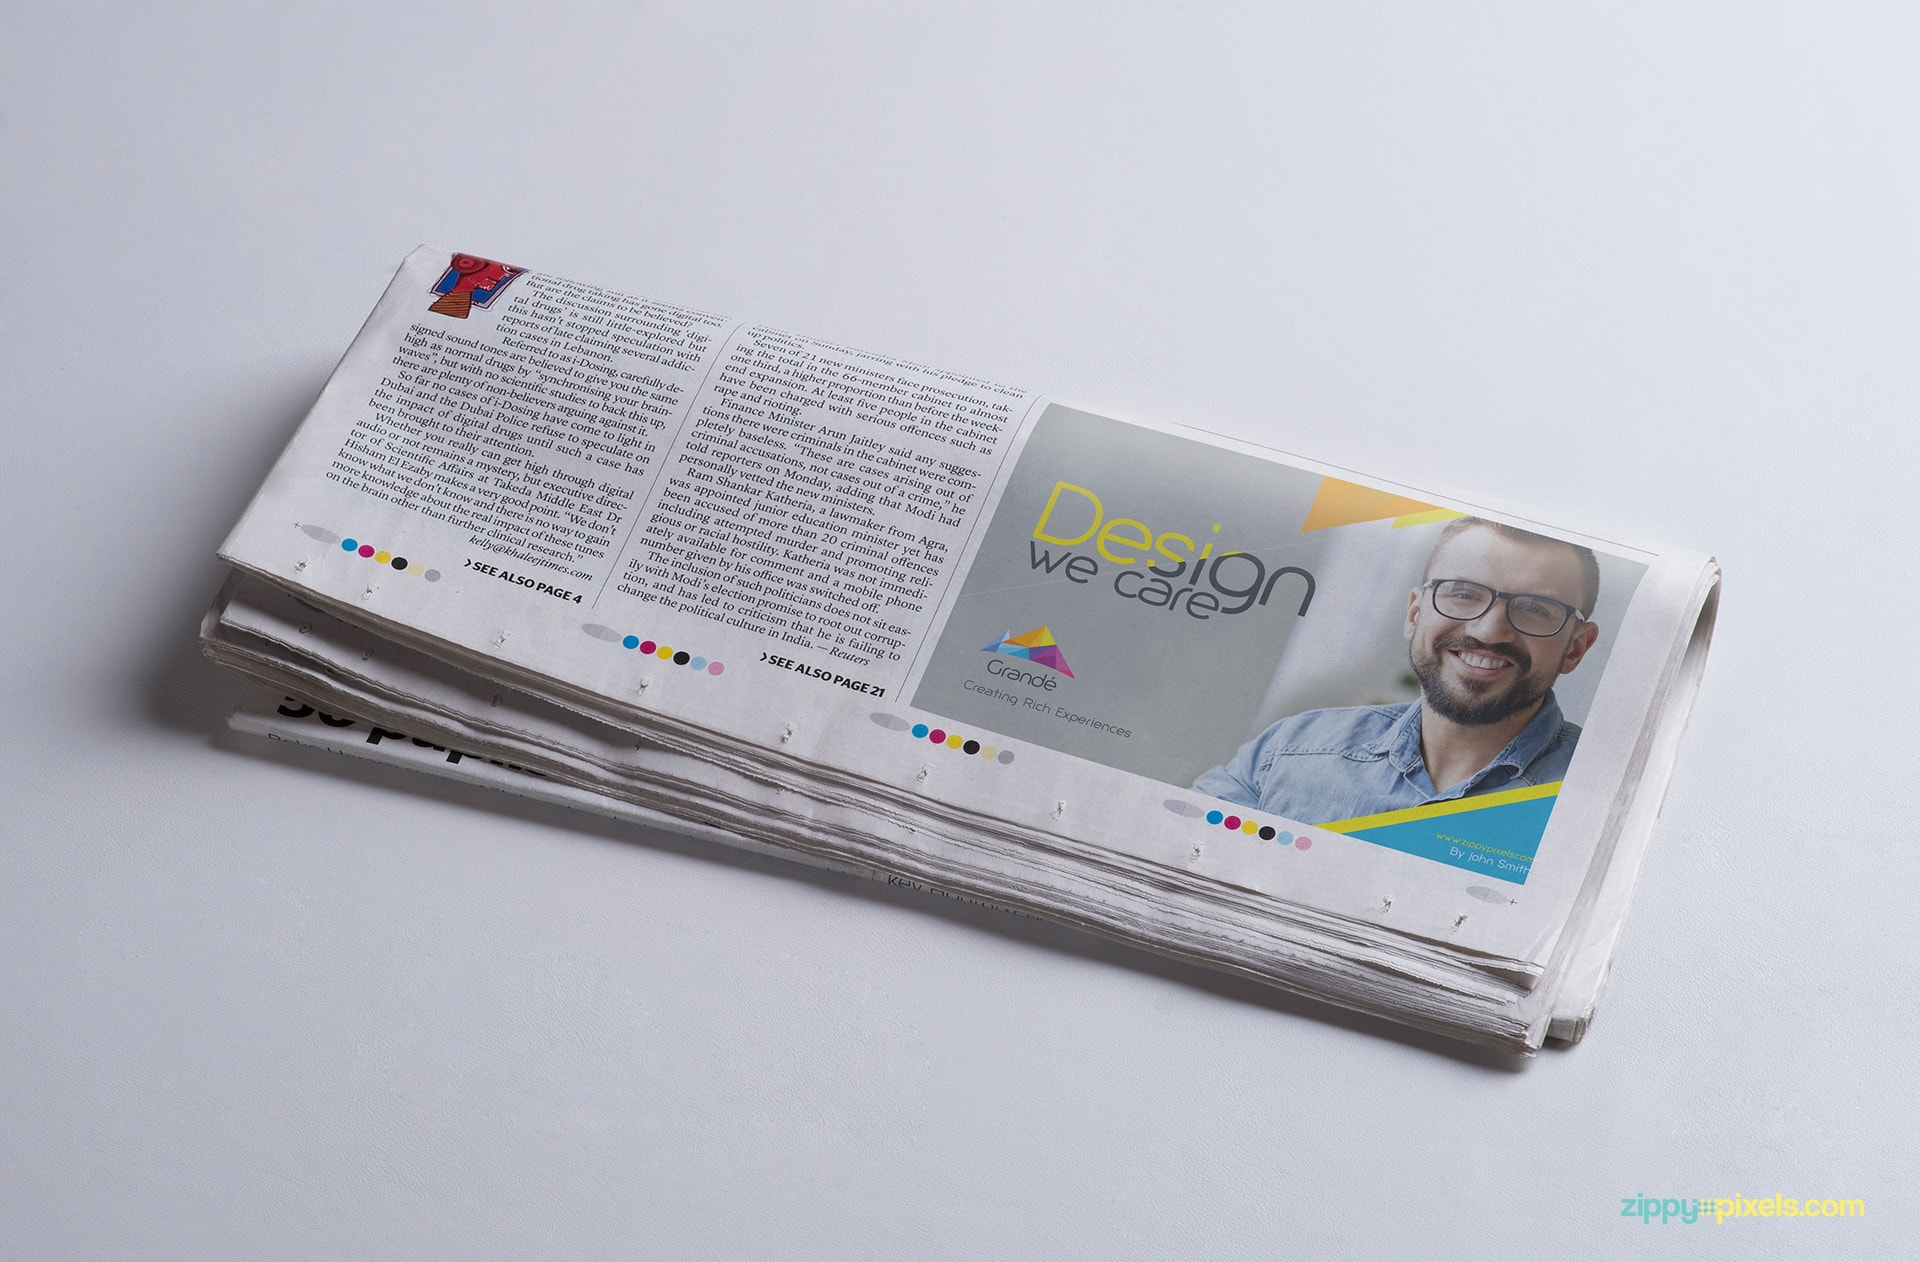 Advertisement PSD mockup of folded newspaper